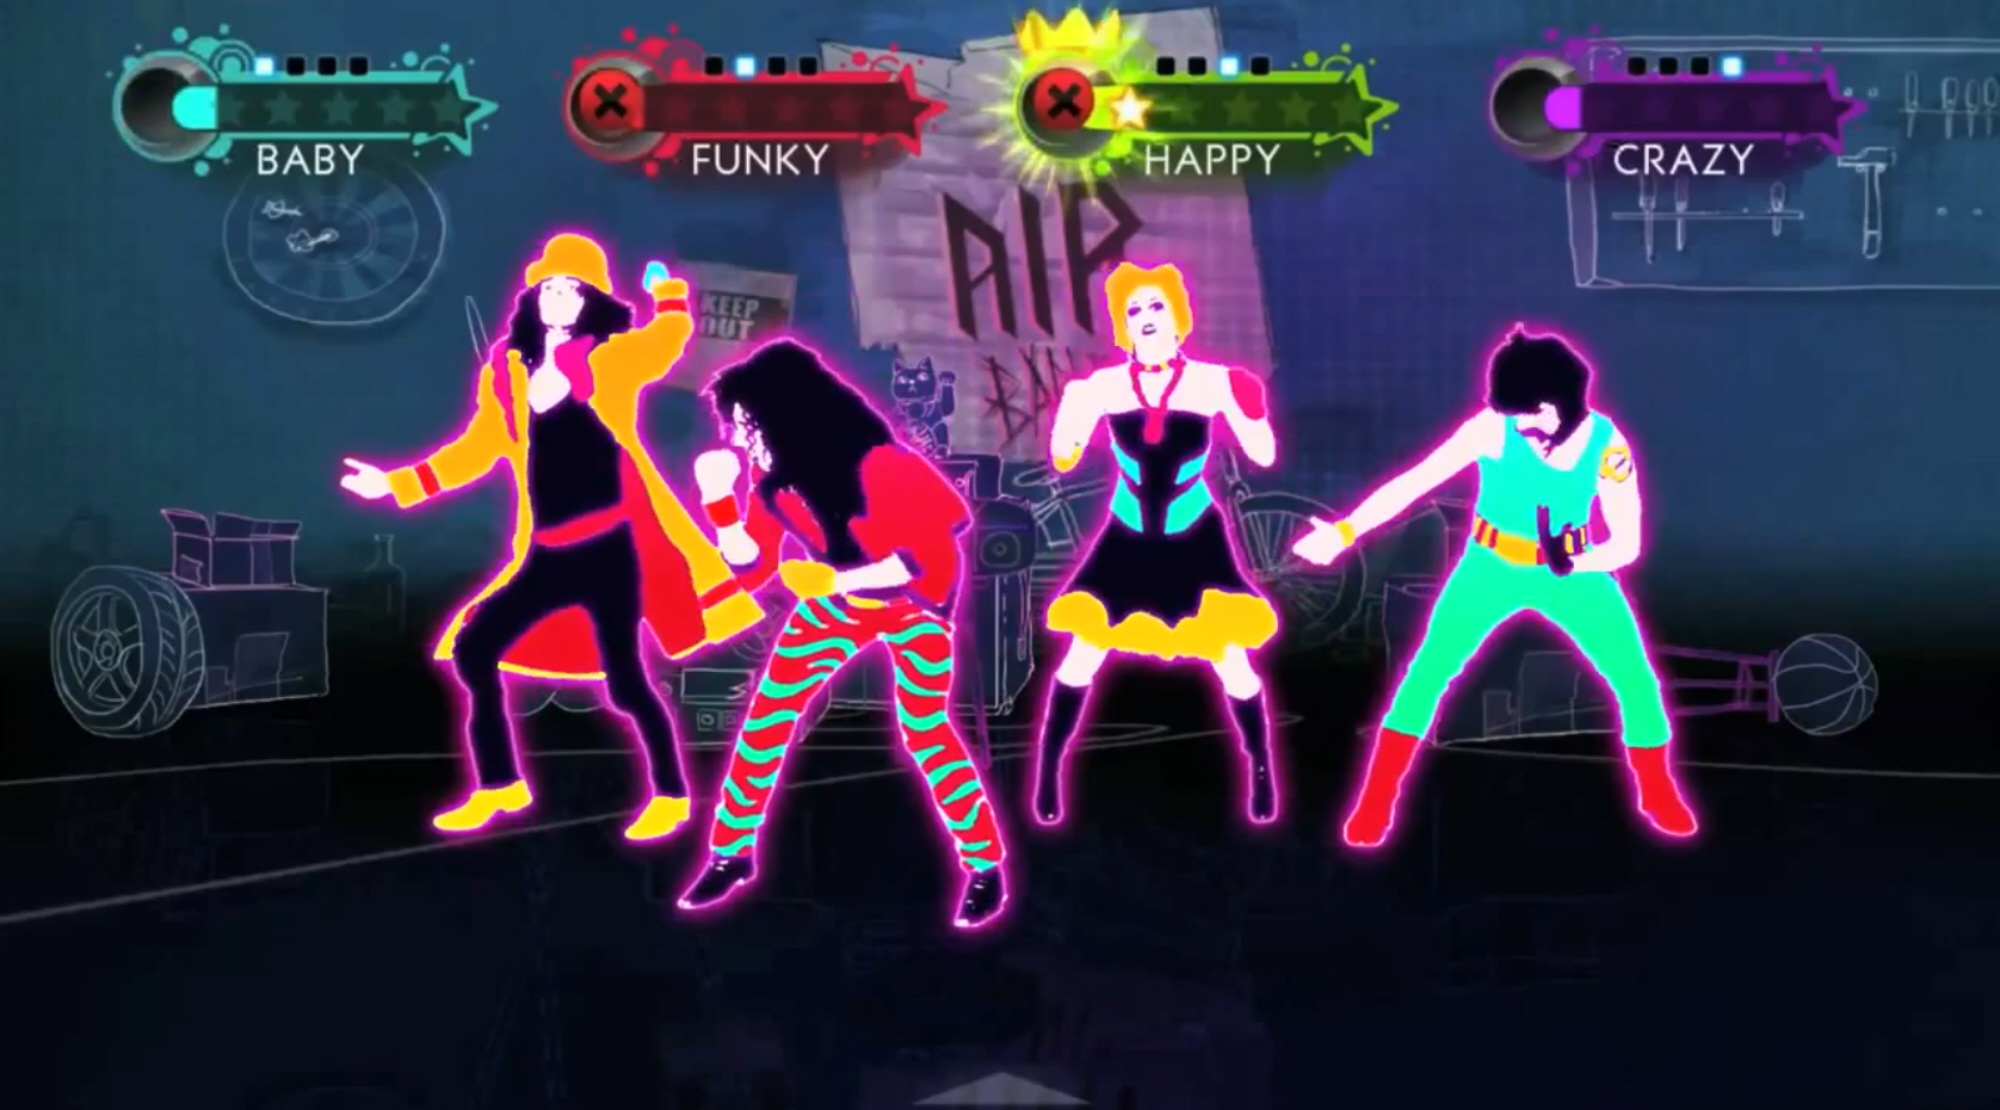 Just Dance Game For Xbox 360 : Just dance 4 for wii u coming in october? my nintendo news